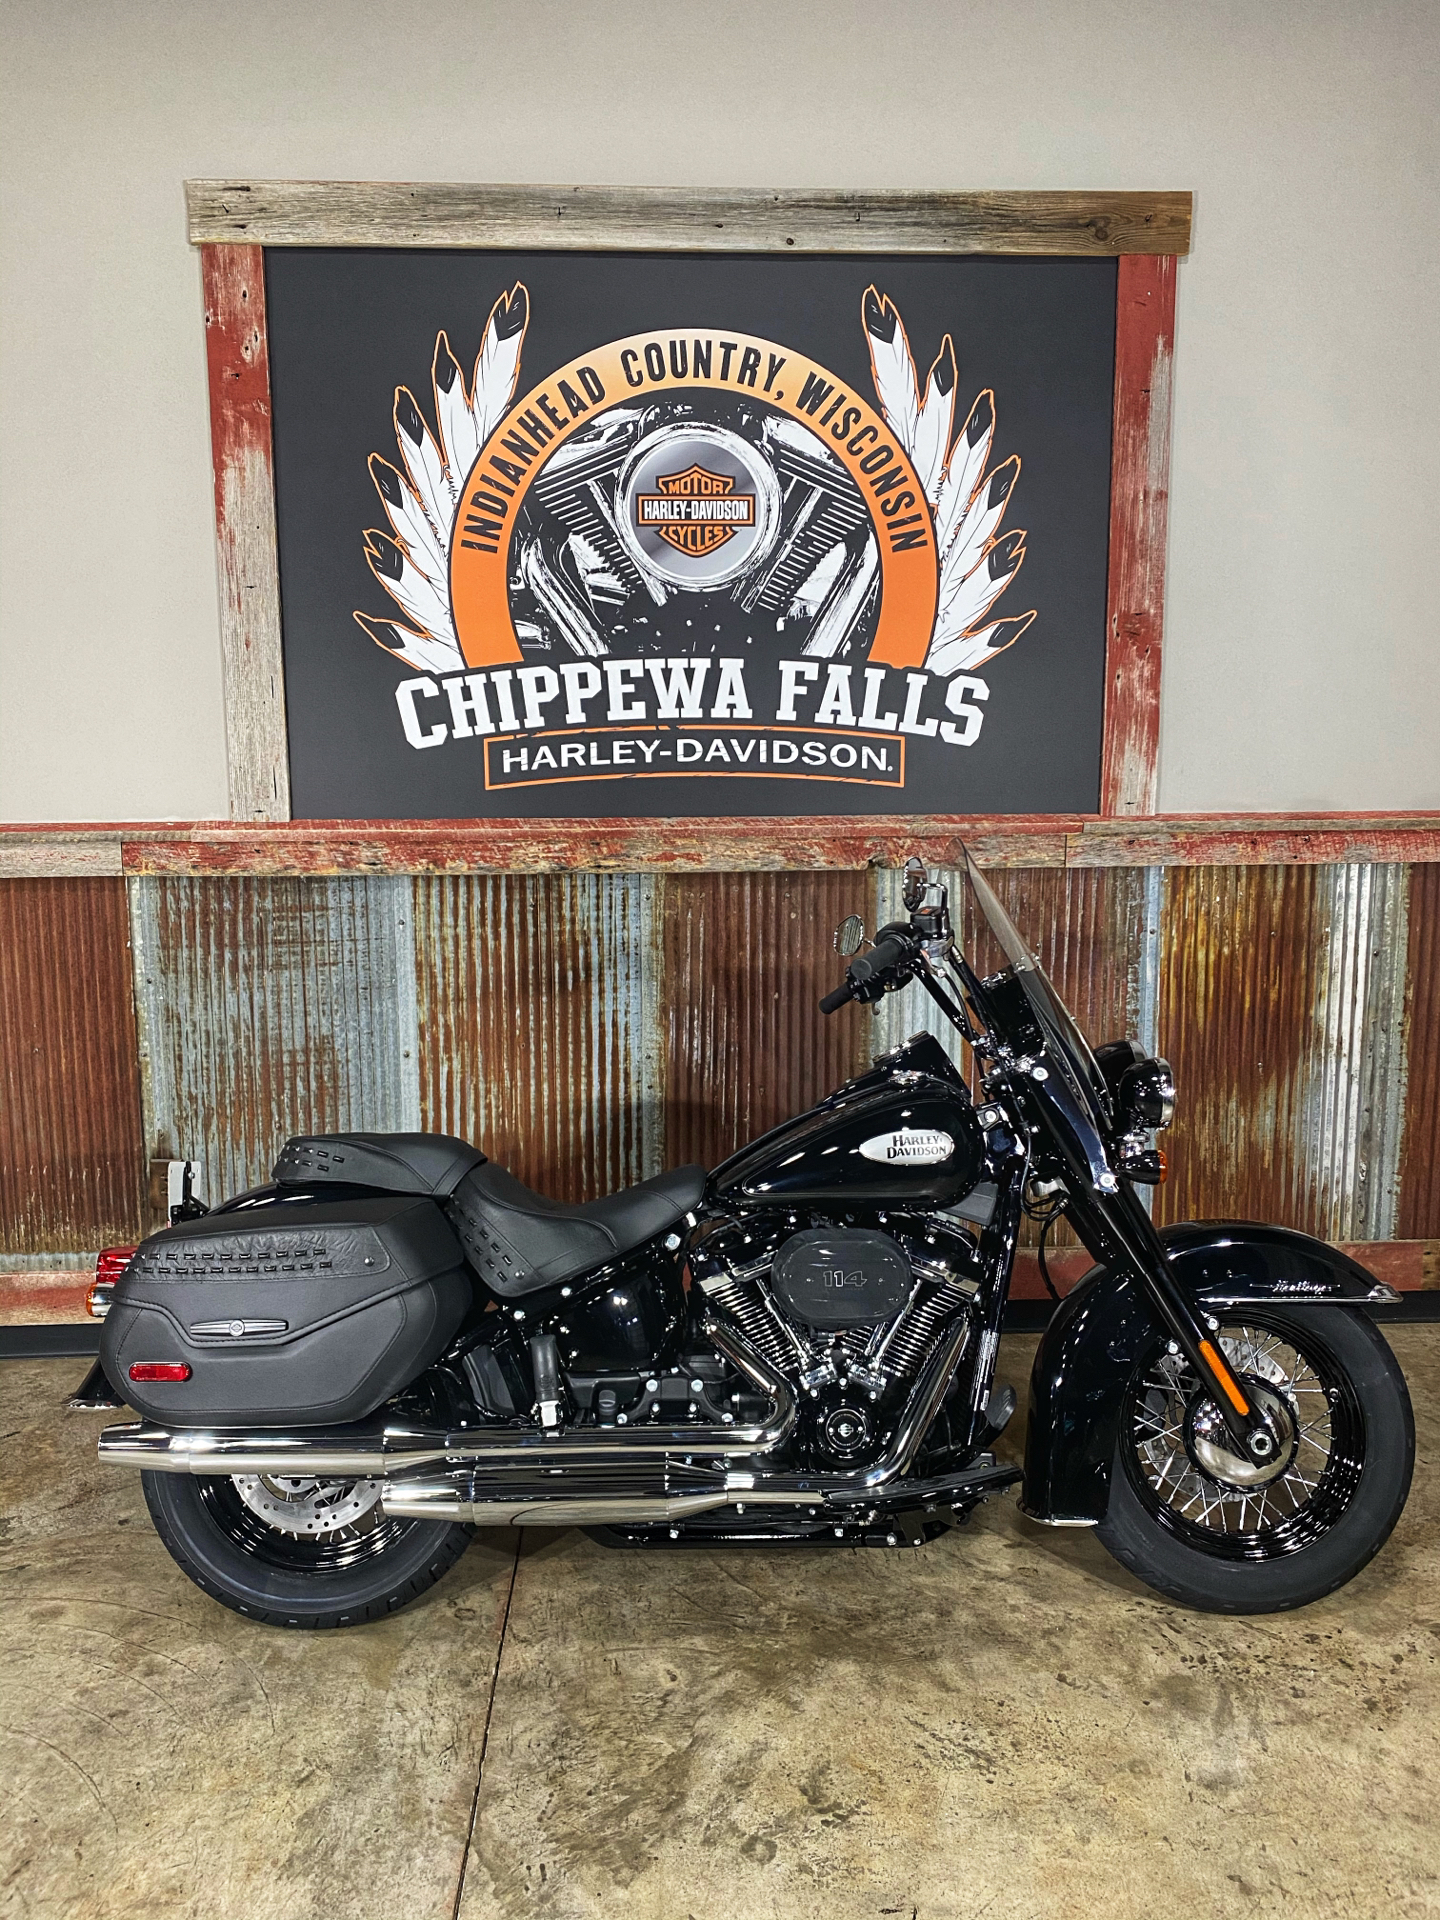 2021 Harley-Davidson Heritage Classic 114 in Chippewa Falls, Wisconsin - Photo 2